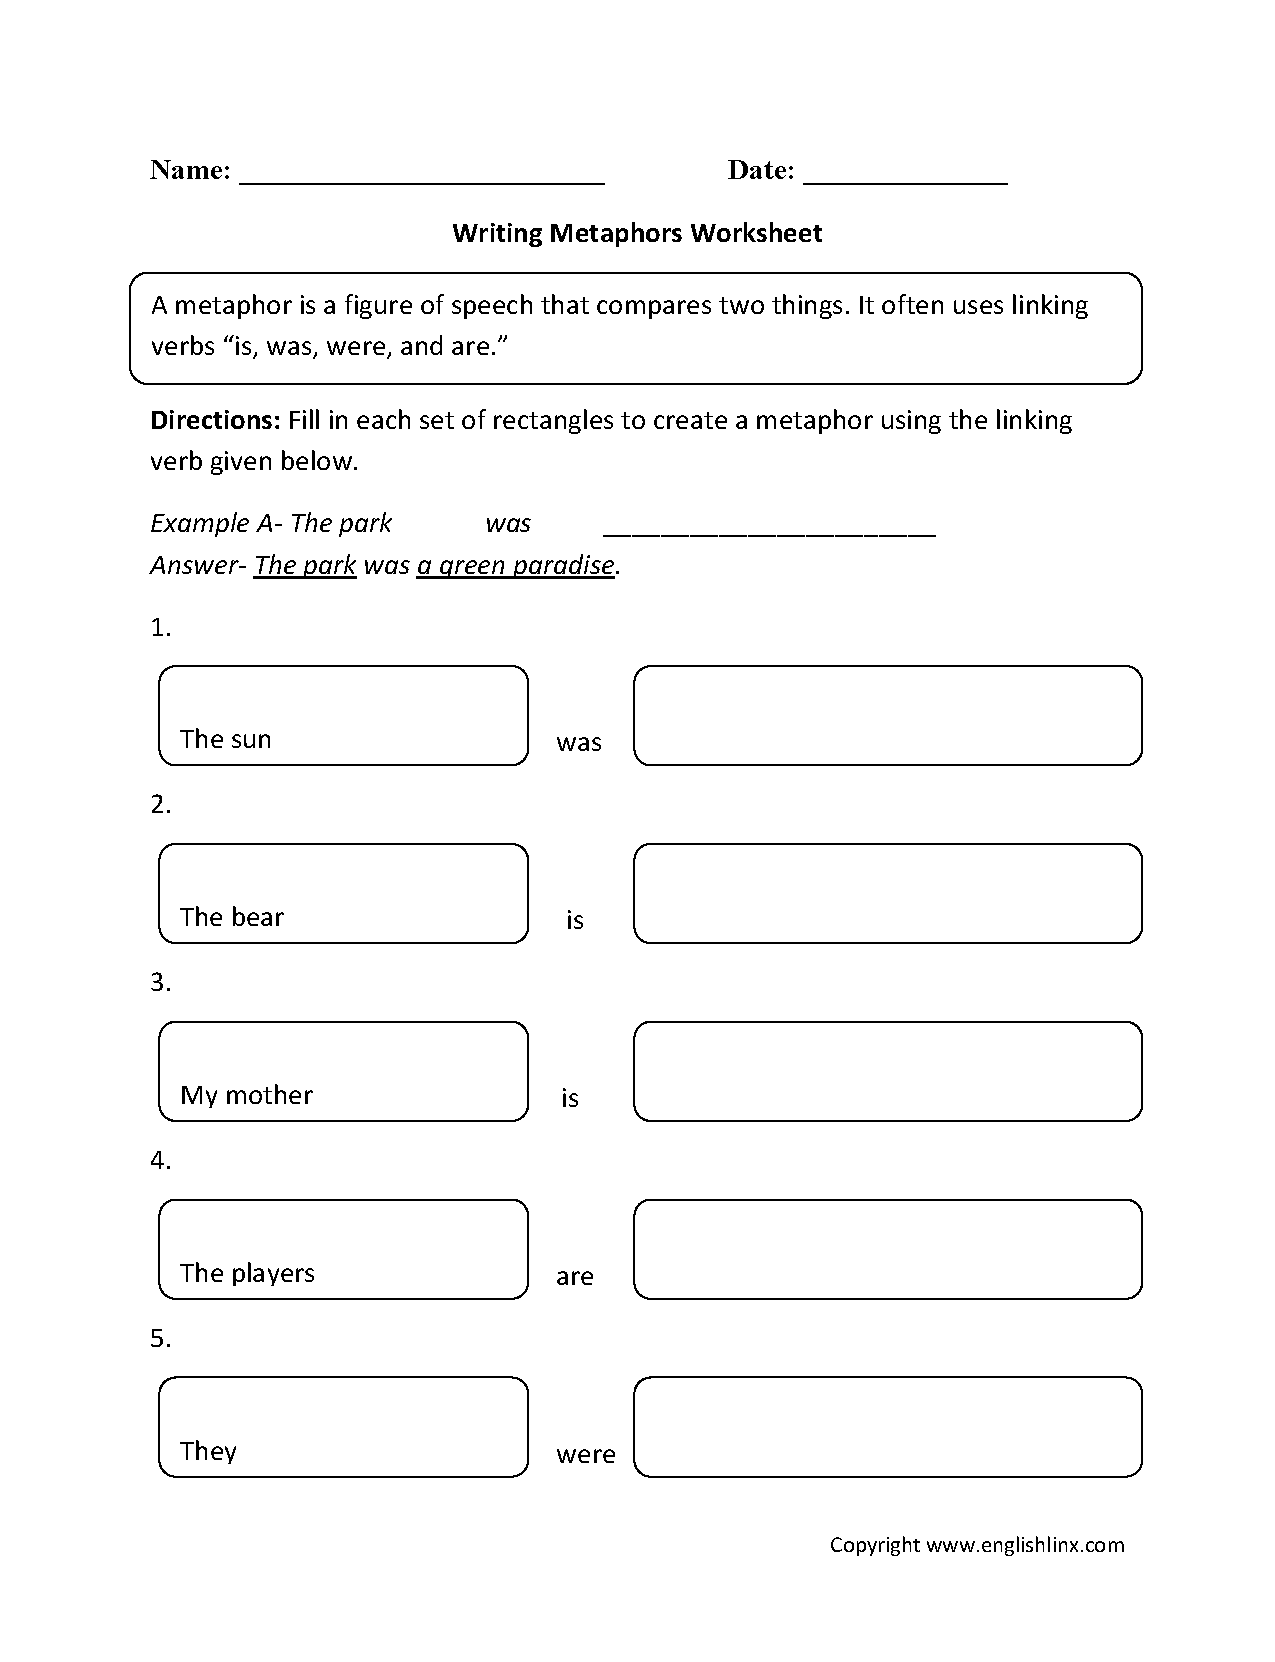 Aldiablosus  Sweet Englishlinxcom  Metaphors Worksheets With Lovable Worksheet With Delectable Matching Letters Worksheets Also Watsons Go To Birmingham Worksheets In Addition Simple And Complete Predicate Worksheets And St Grade Writing Worksheets Free Printable As Well As Circulatory System Worksheets Kids Additionally Picture Sequence Worksheets From Englishlinxcom With Aldiablosus  Lovable Englishlinxcom  Metaphors Worksheets With Delectable Worksheet And Sweet Matching Letters Worksheets Also Watsons Go To Birmingham Worksheets In Addition Simple And Complete Predicate Worksheets From Englishlinxcom